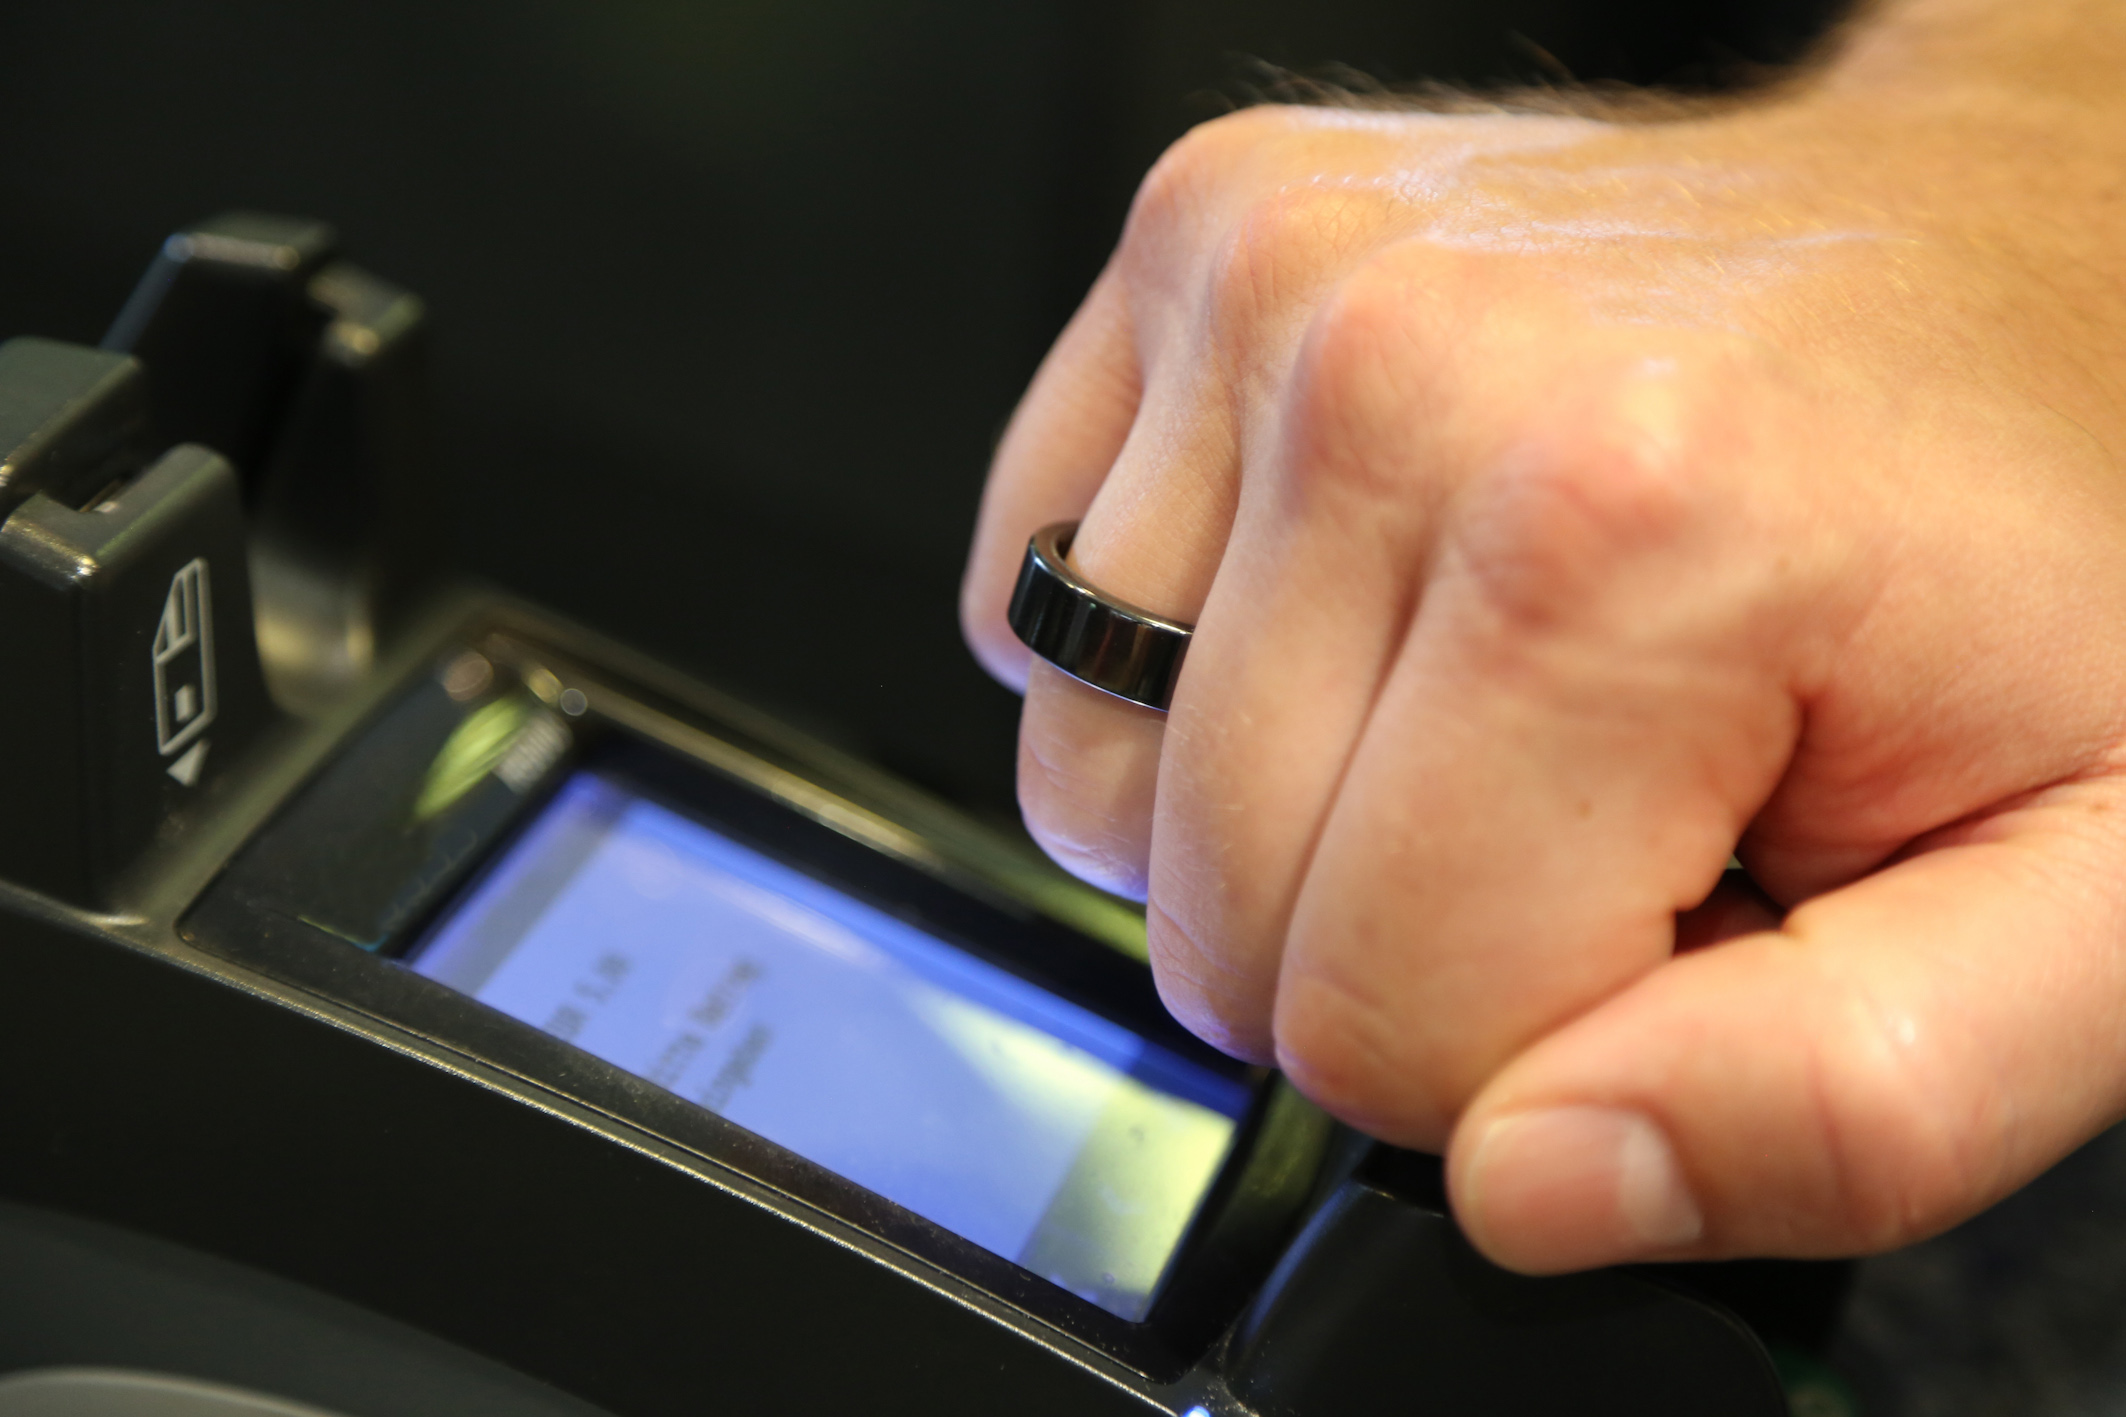 Payment Enabled Nfc Ring